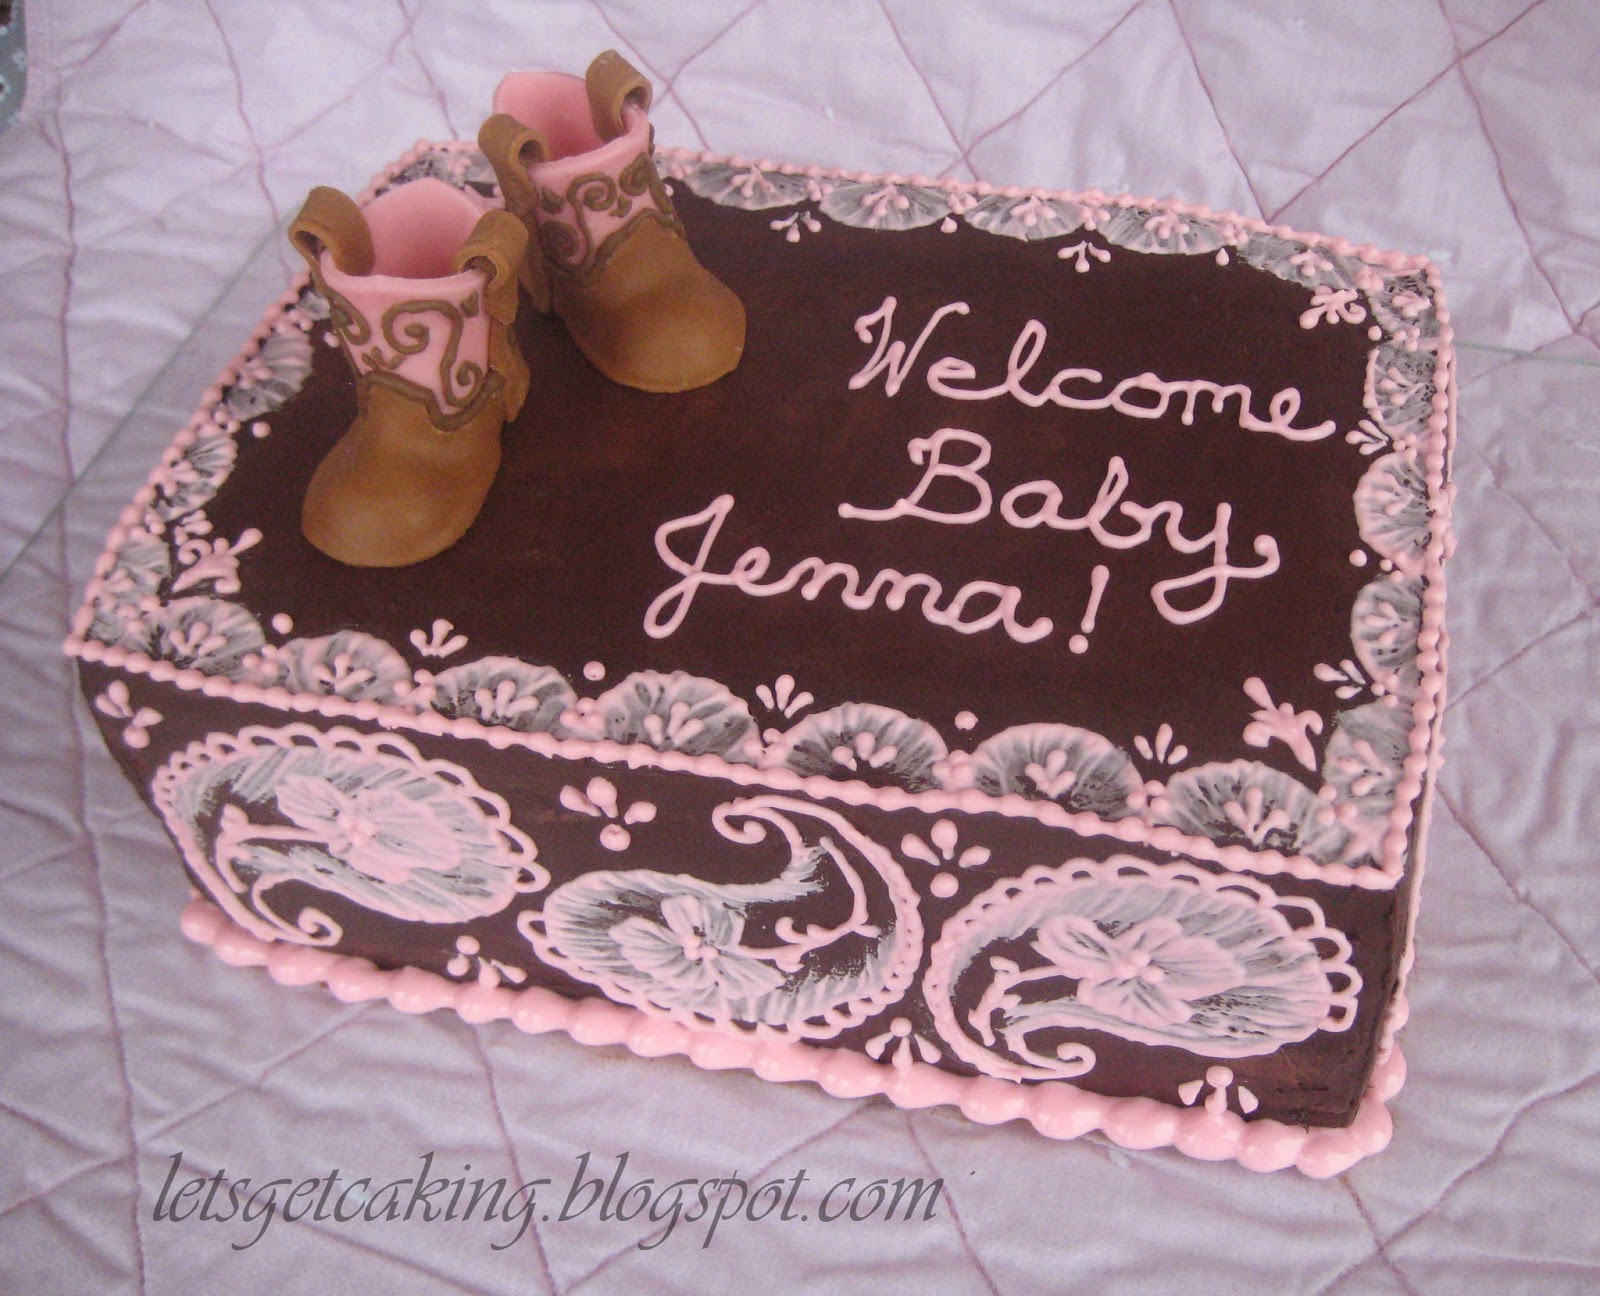 Let\'s Get Caking!: Welcome, Baby Jenna!